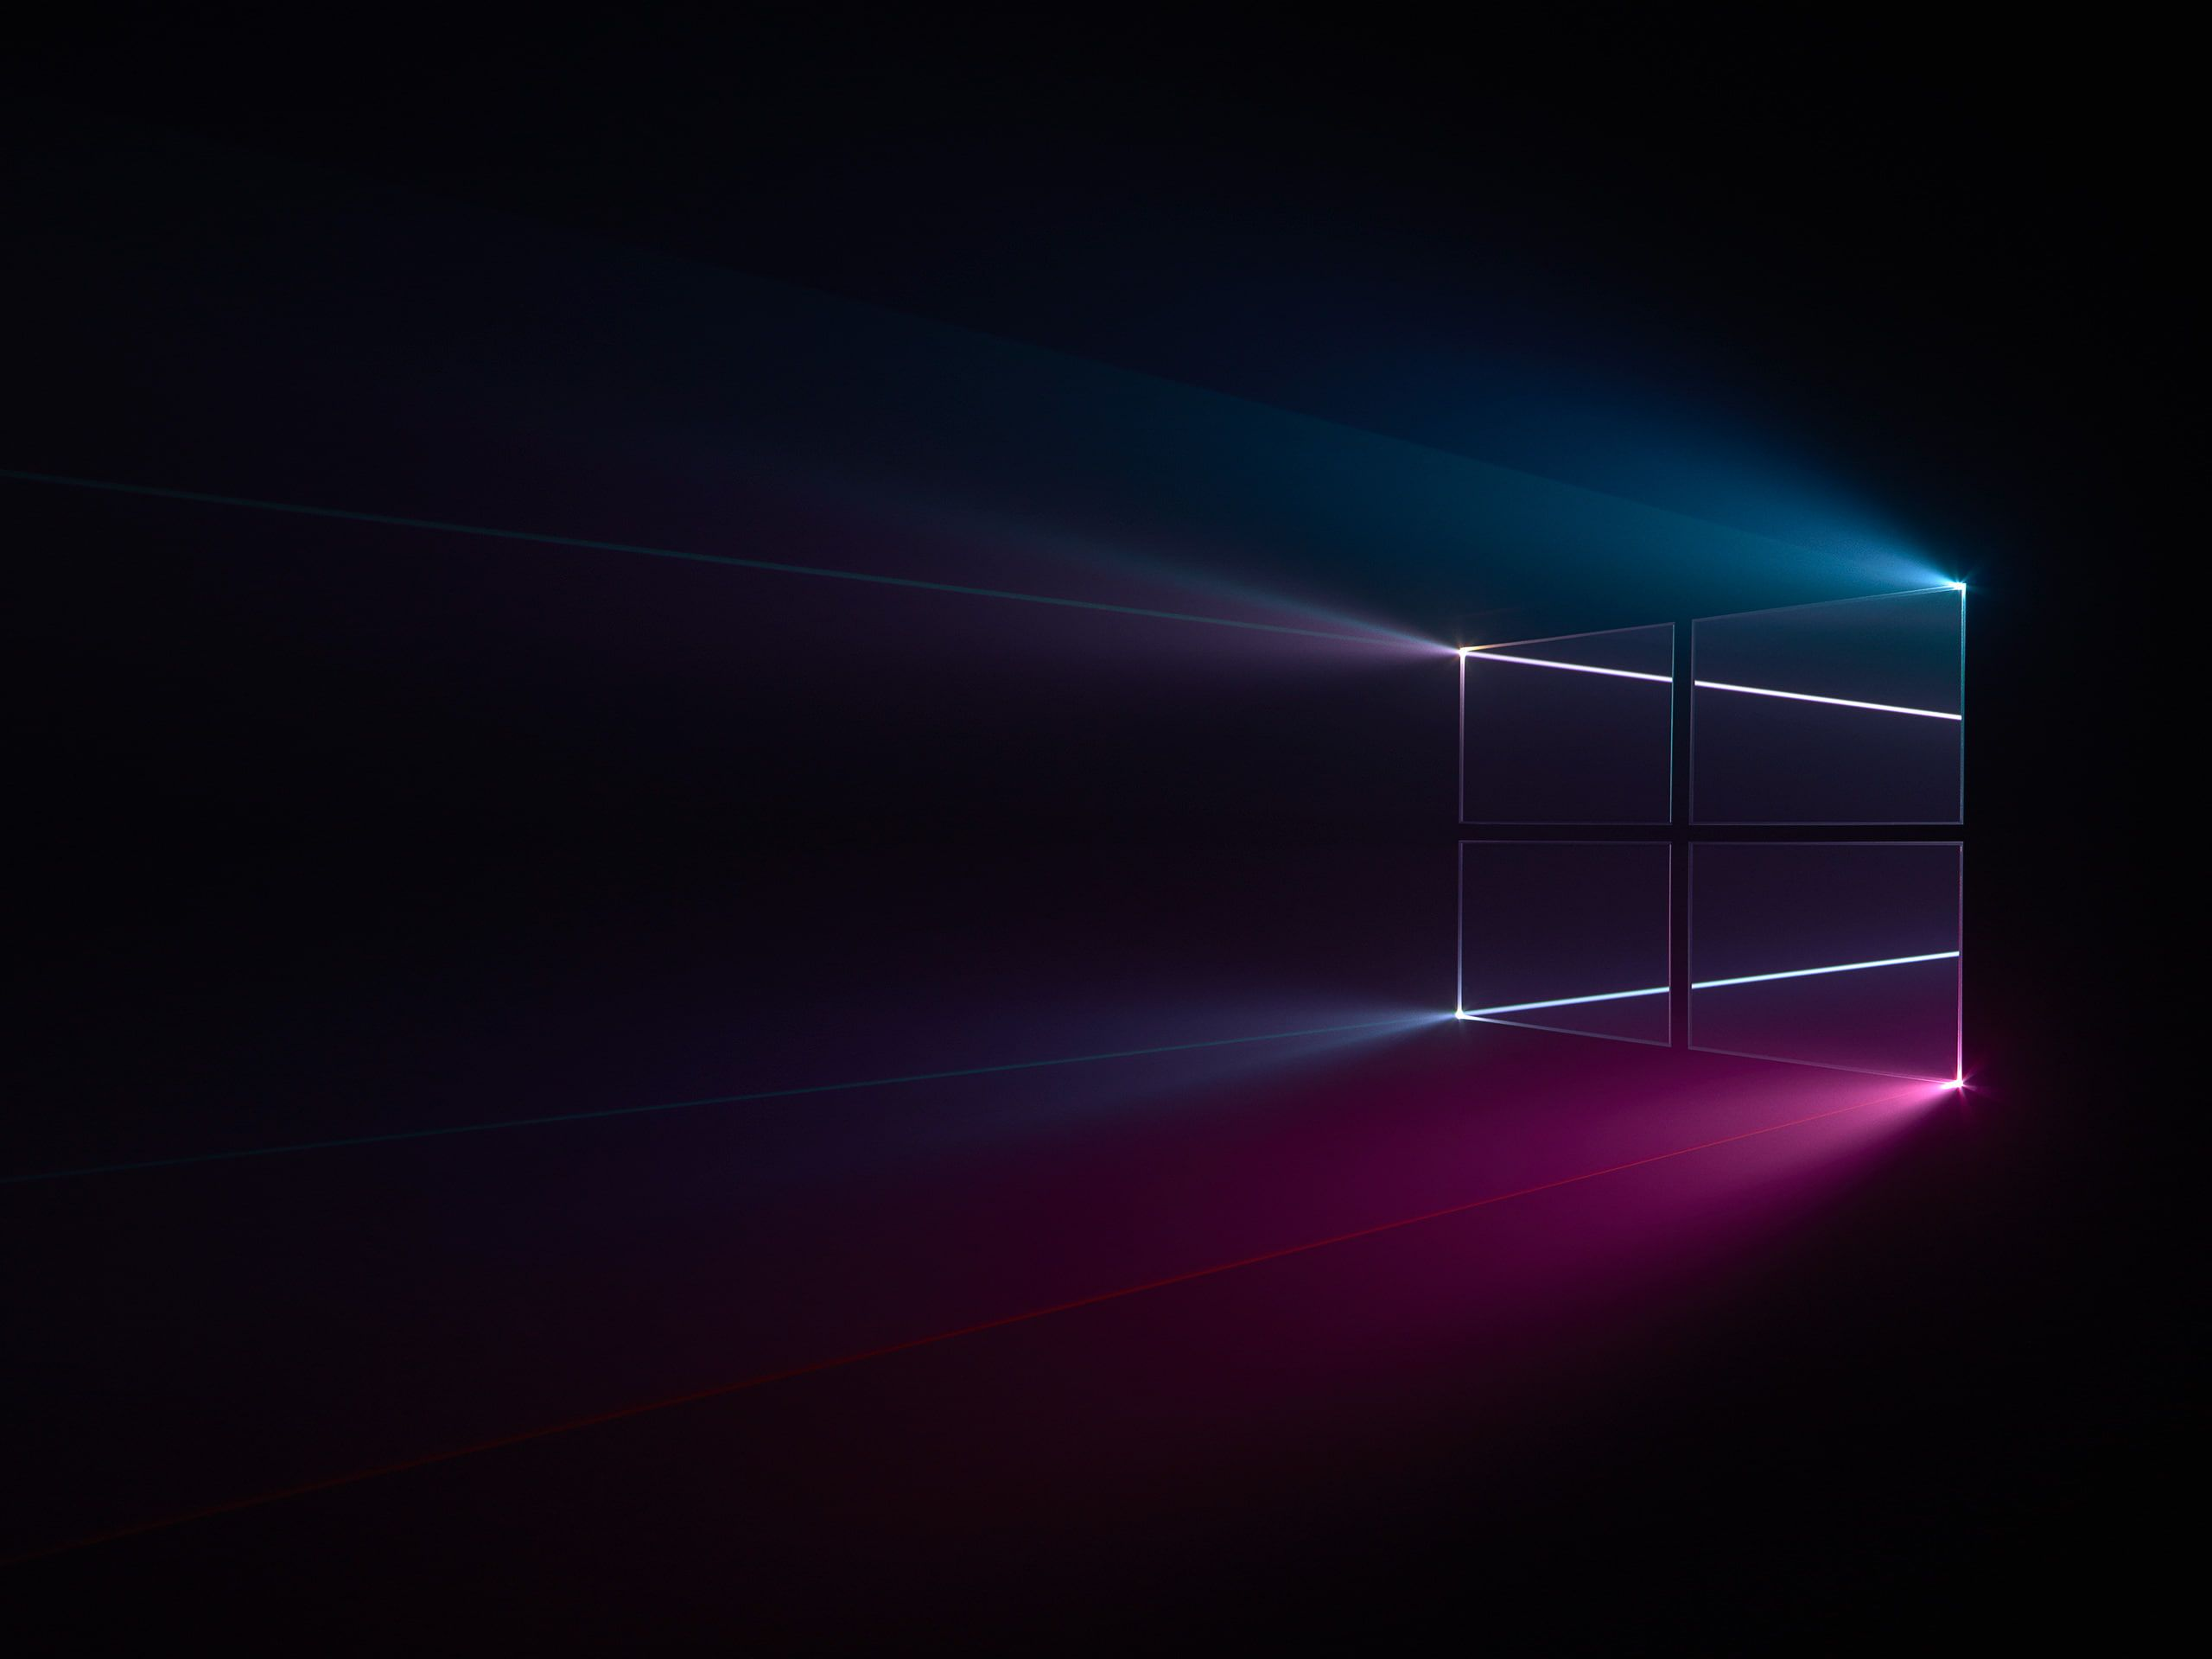 Windows Logo Blue Dark Windows 10 Pink 2k Wallpaper Hdwallpaper Desktop Wallpaper Windows 10 Windows 10 Desktop Backgrounds Windows Wallpaper